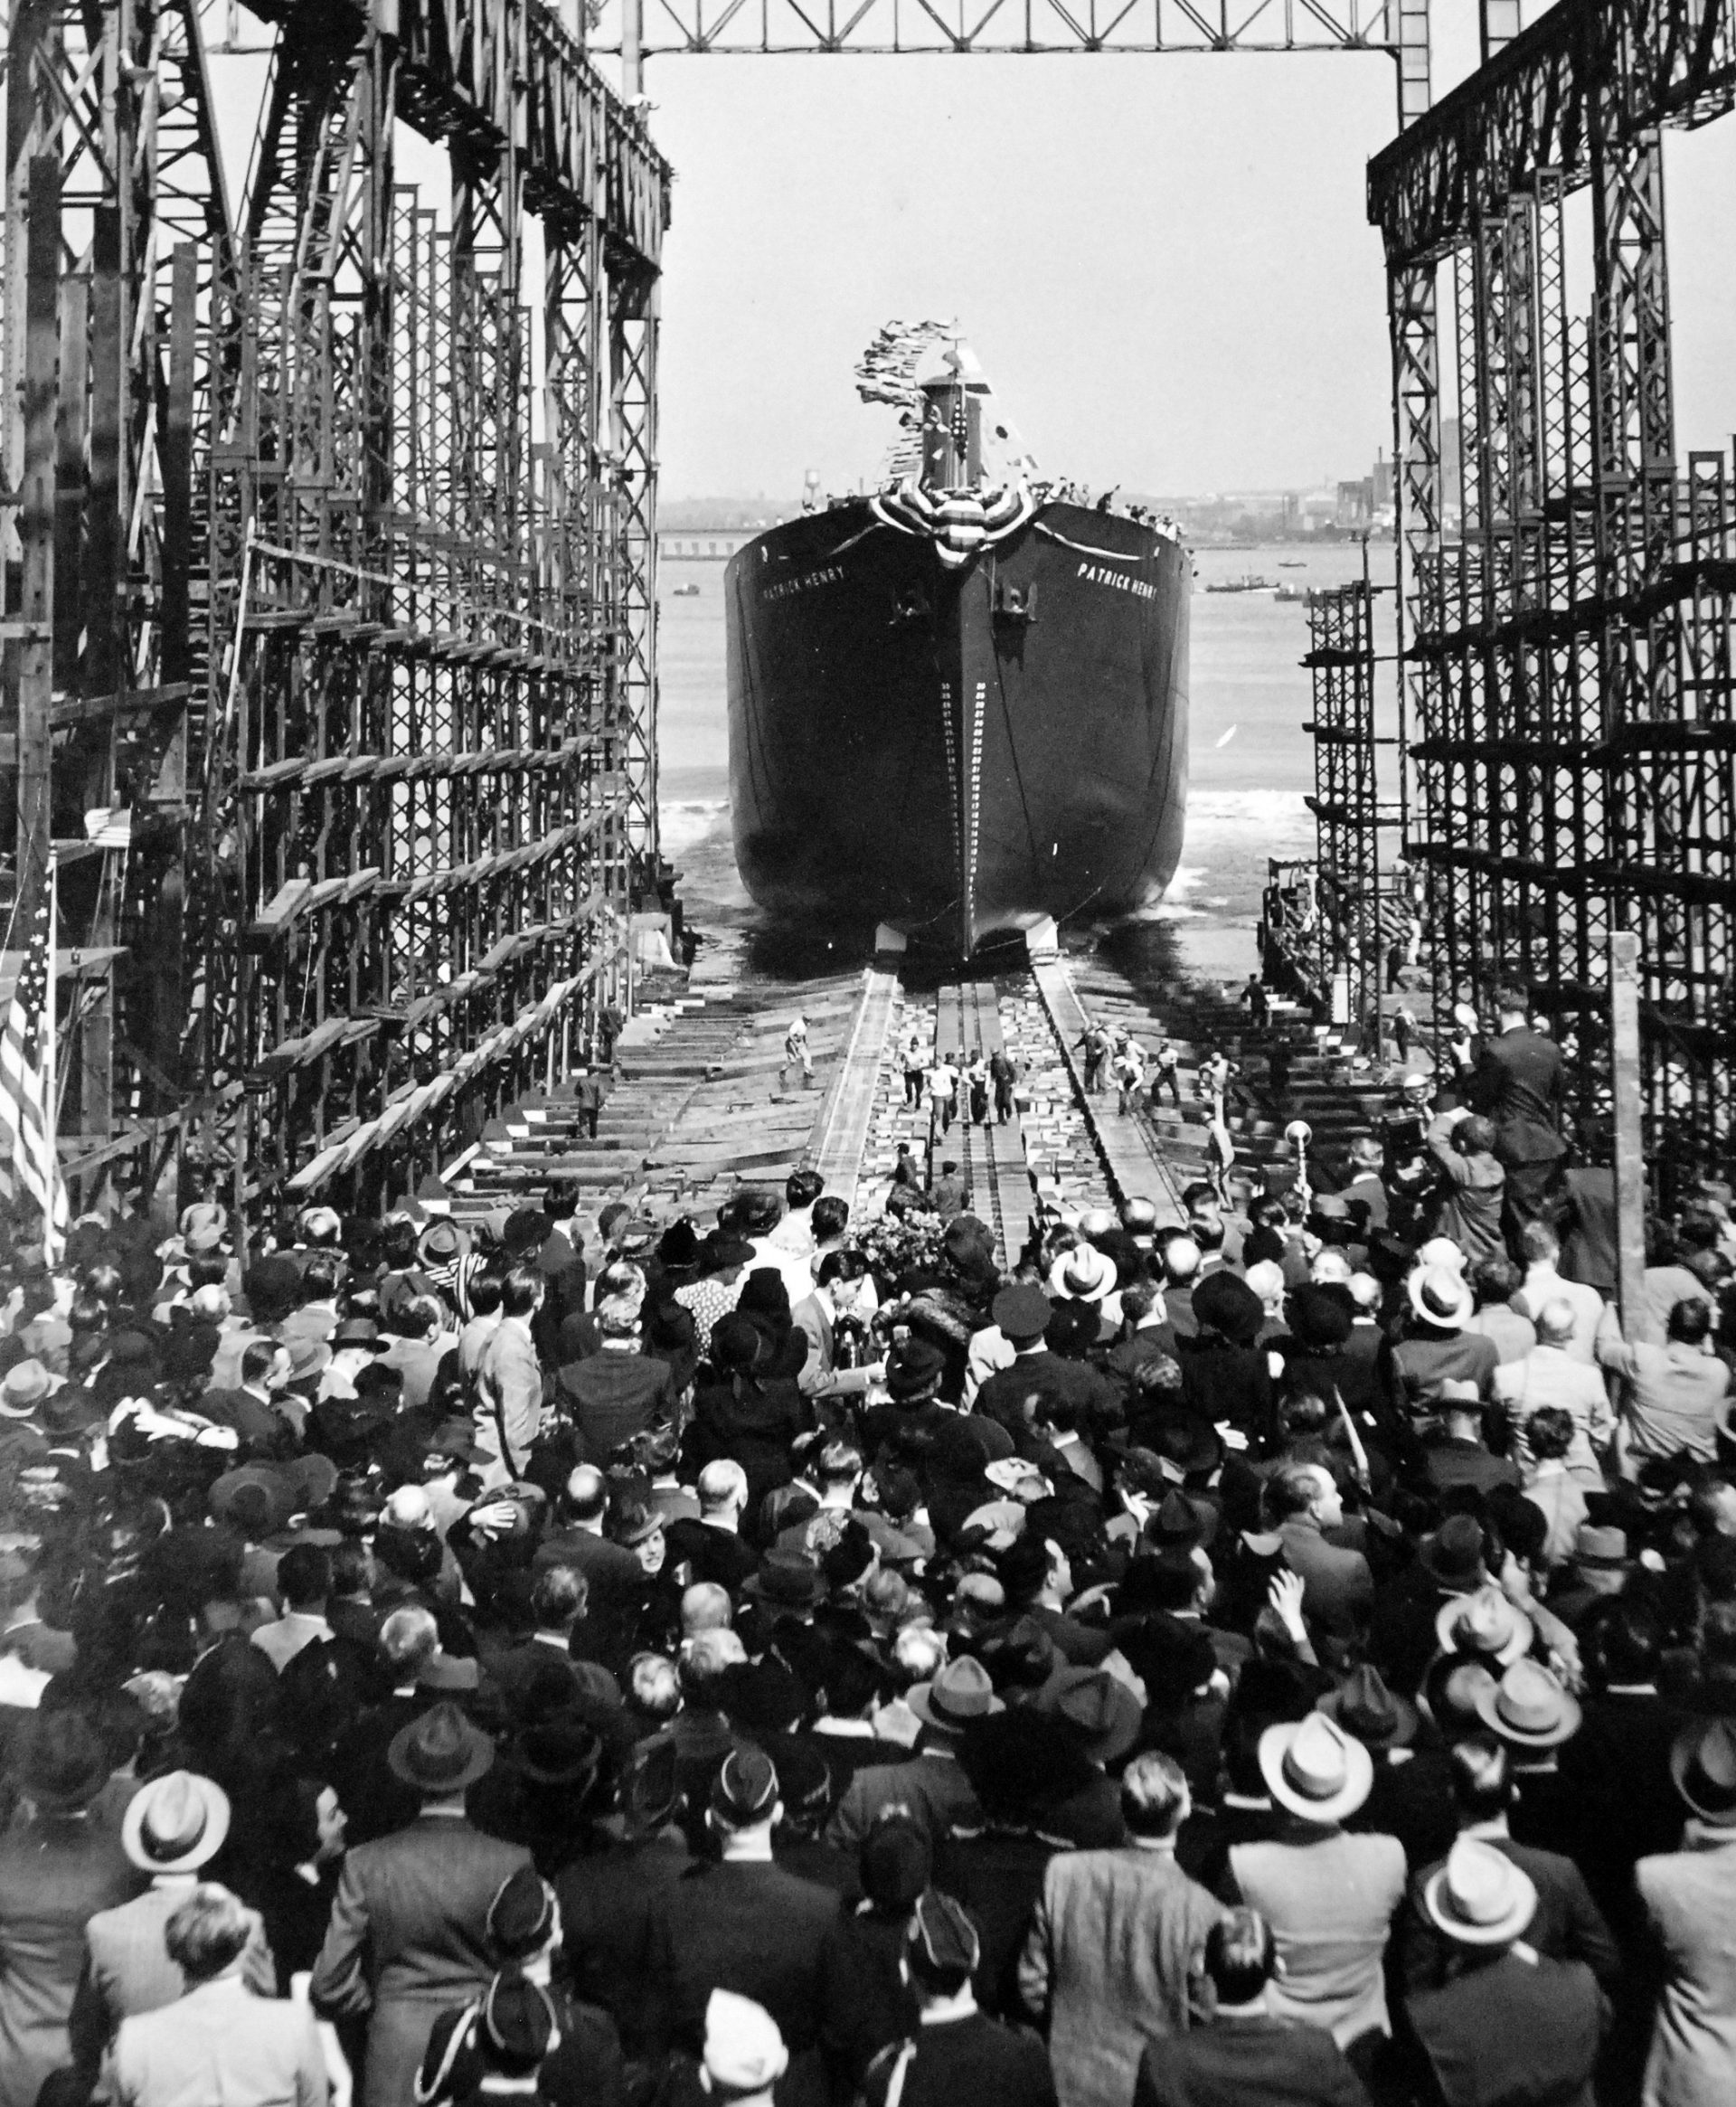 SS Patrick Henry Launching on Liberty Fleet Day, 27 September 1941, Photo Courtesy of the Library of Congress